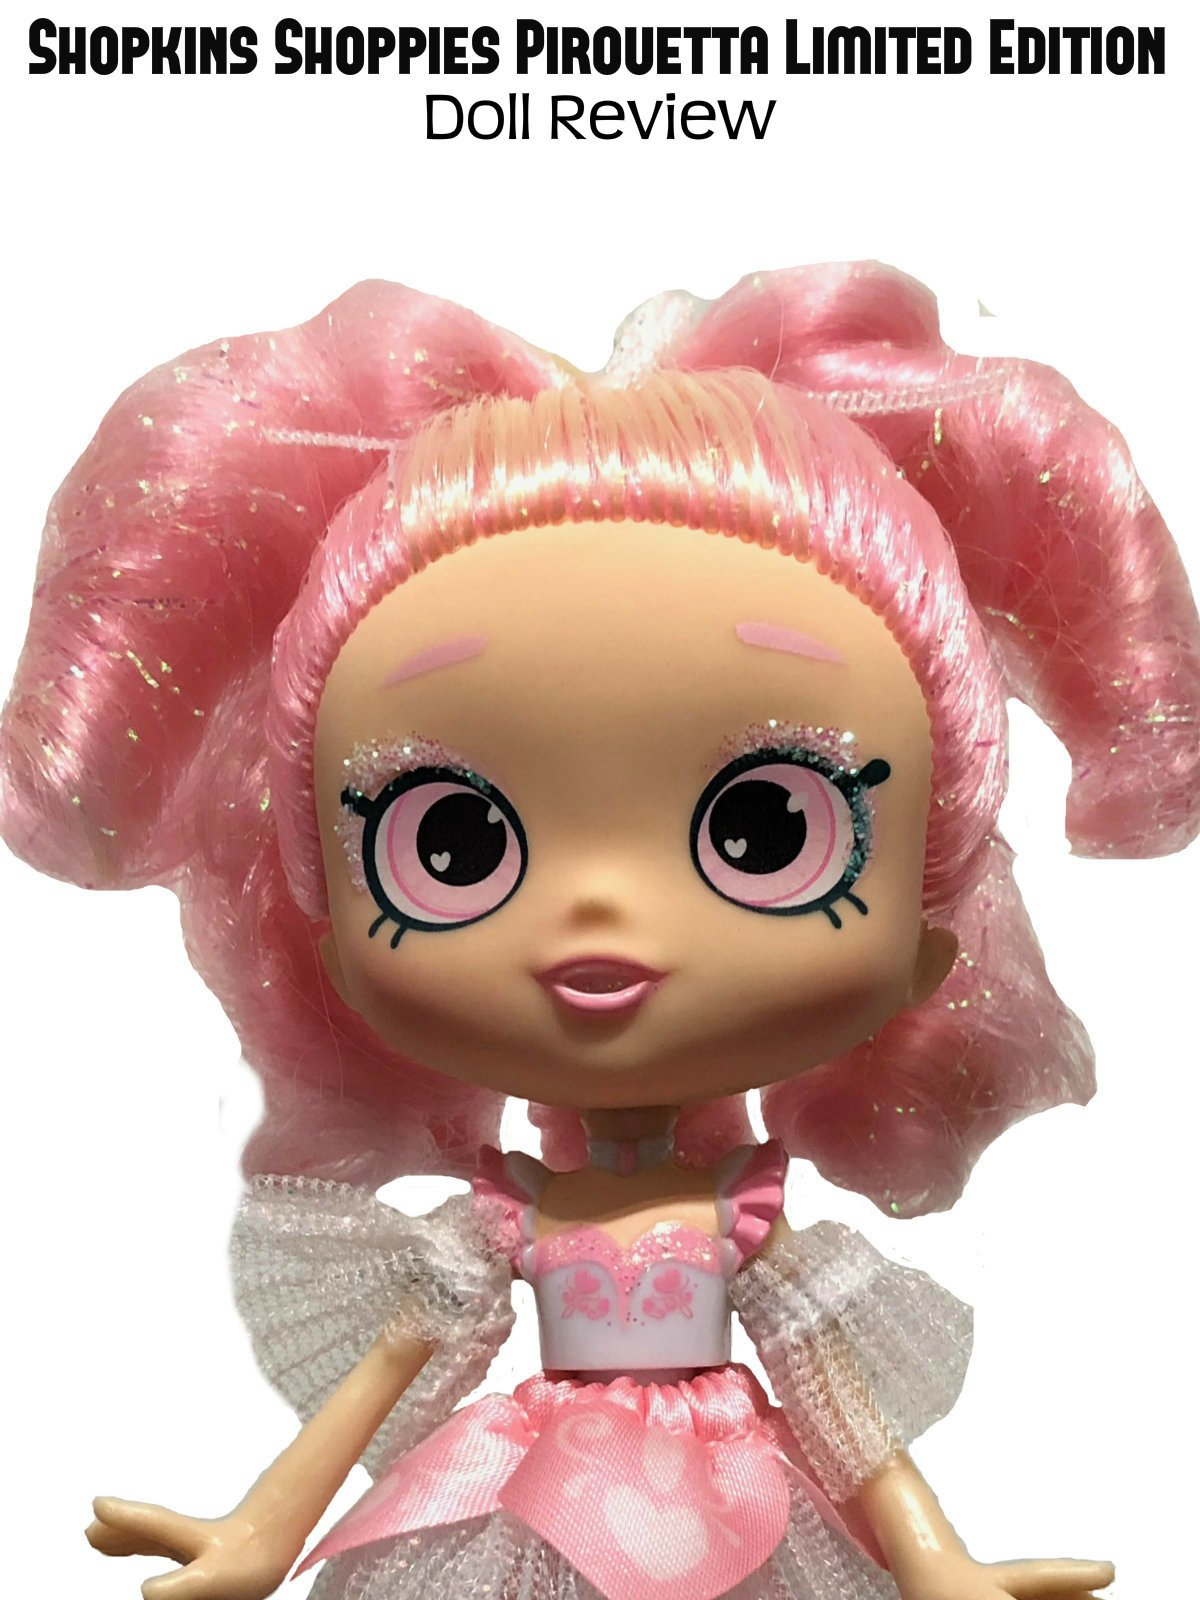 Review: Shopkins Shoppies Pirouetta Limited Edition Doll Review